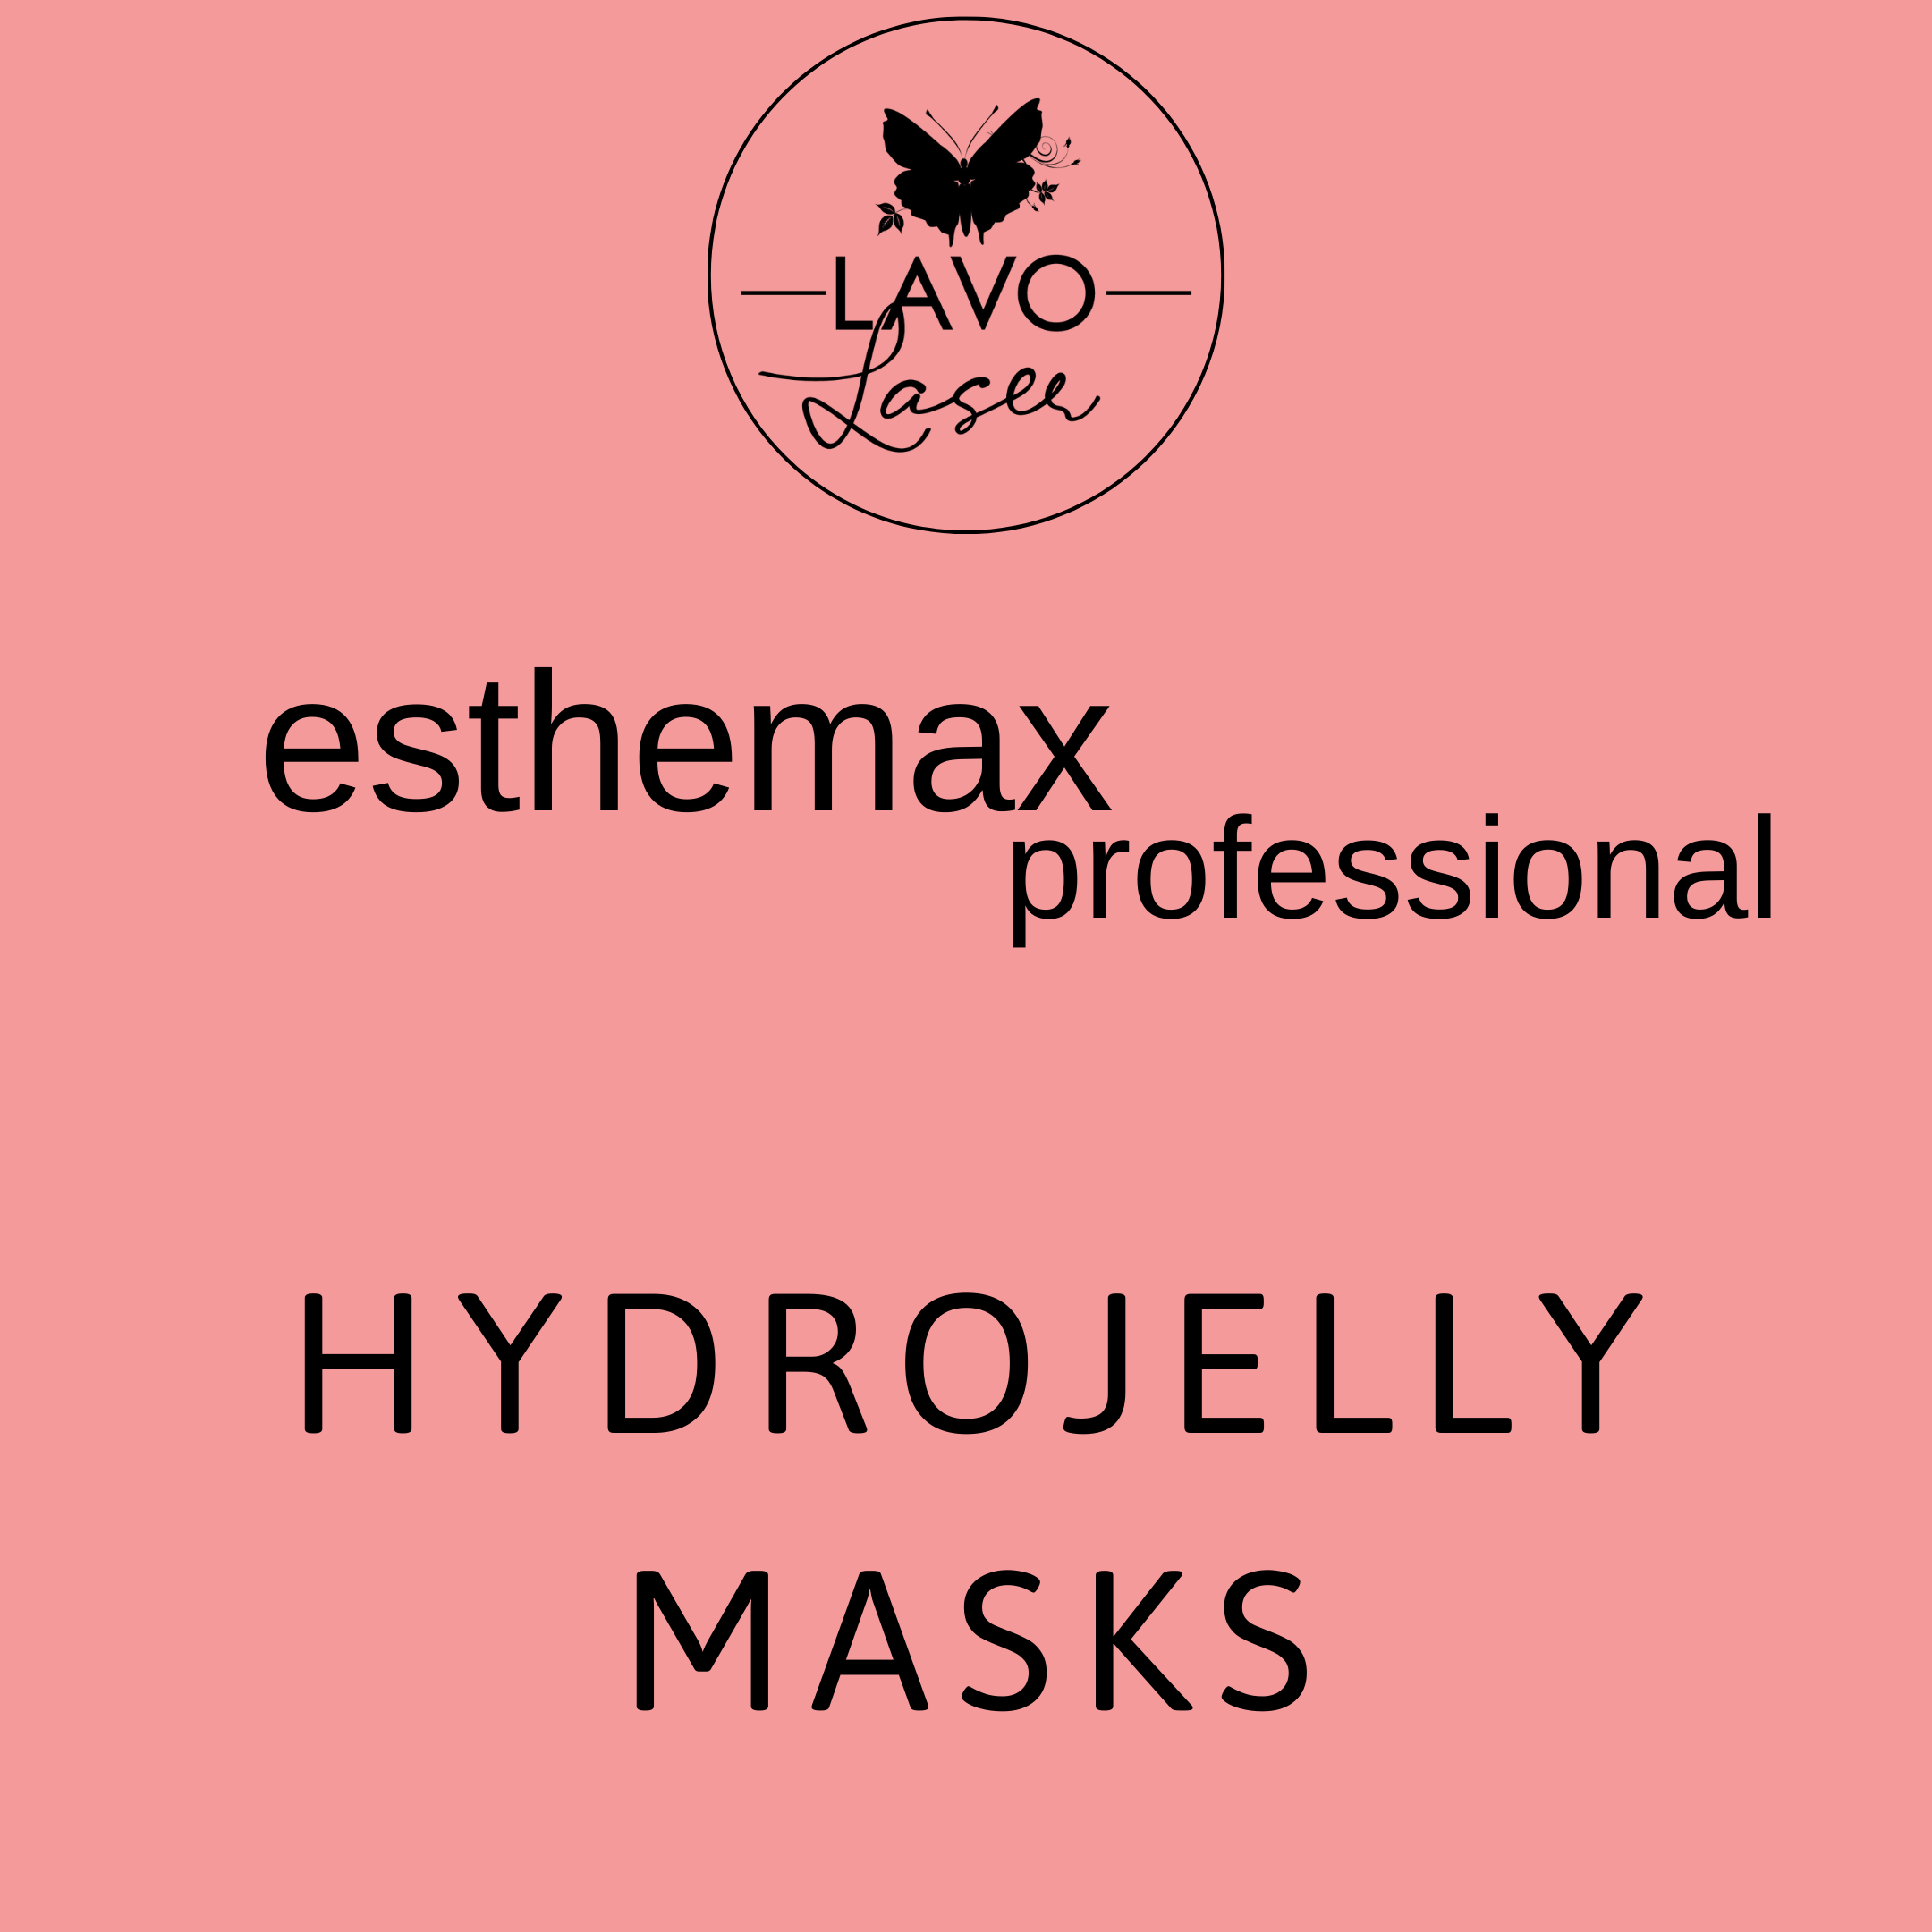 HYDROJELLY MASK